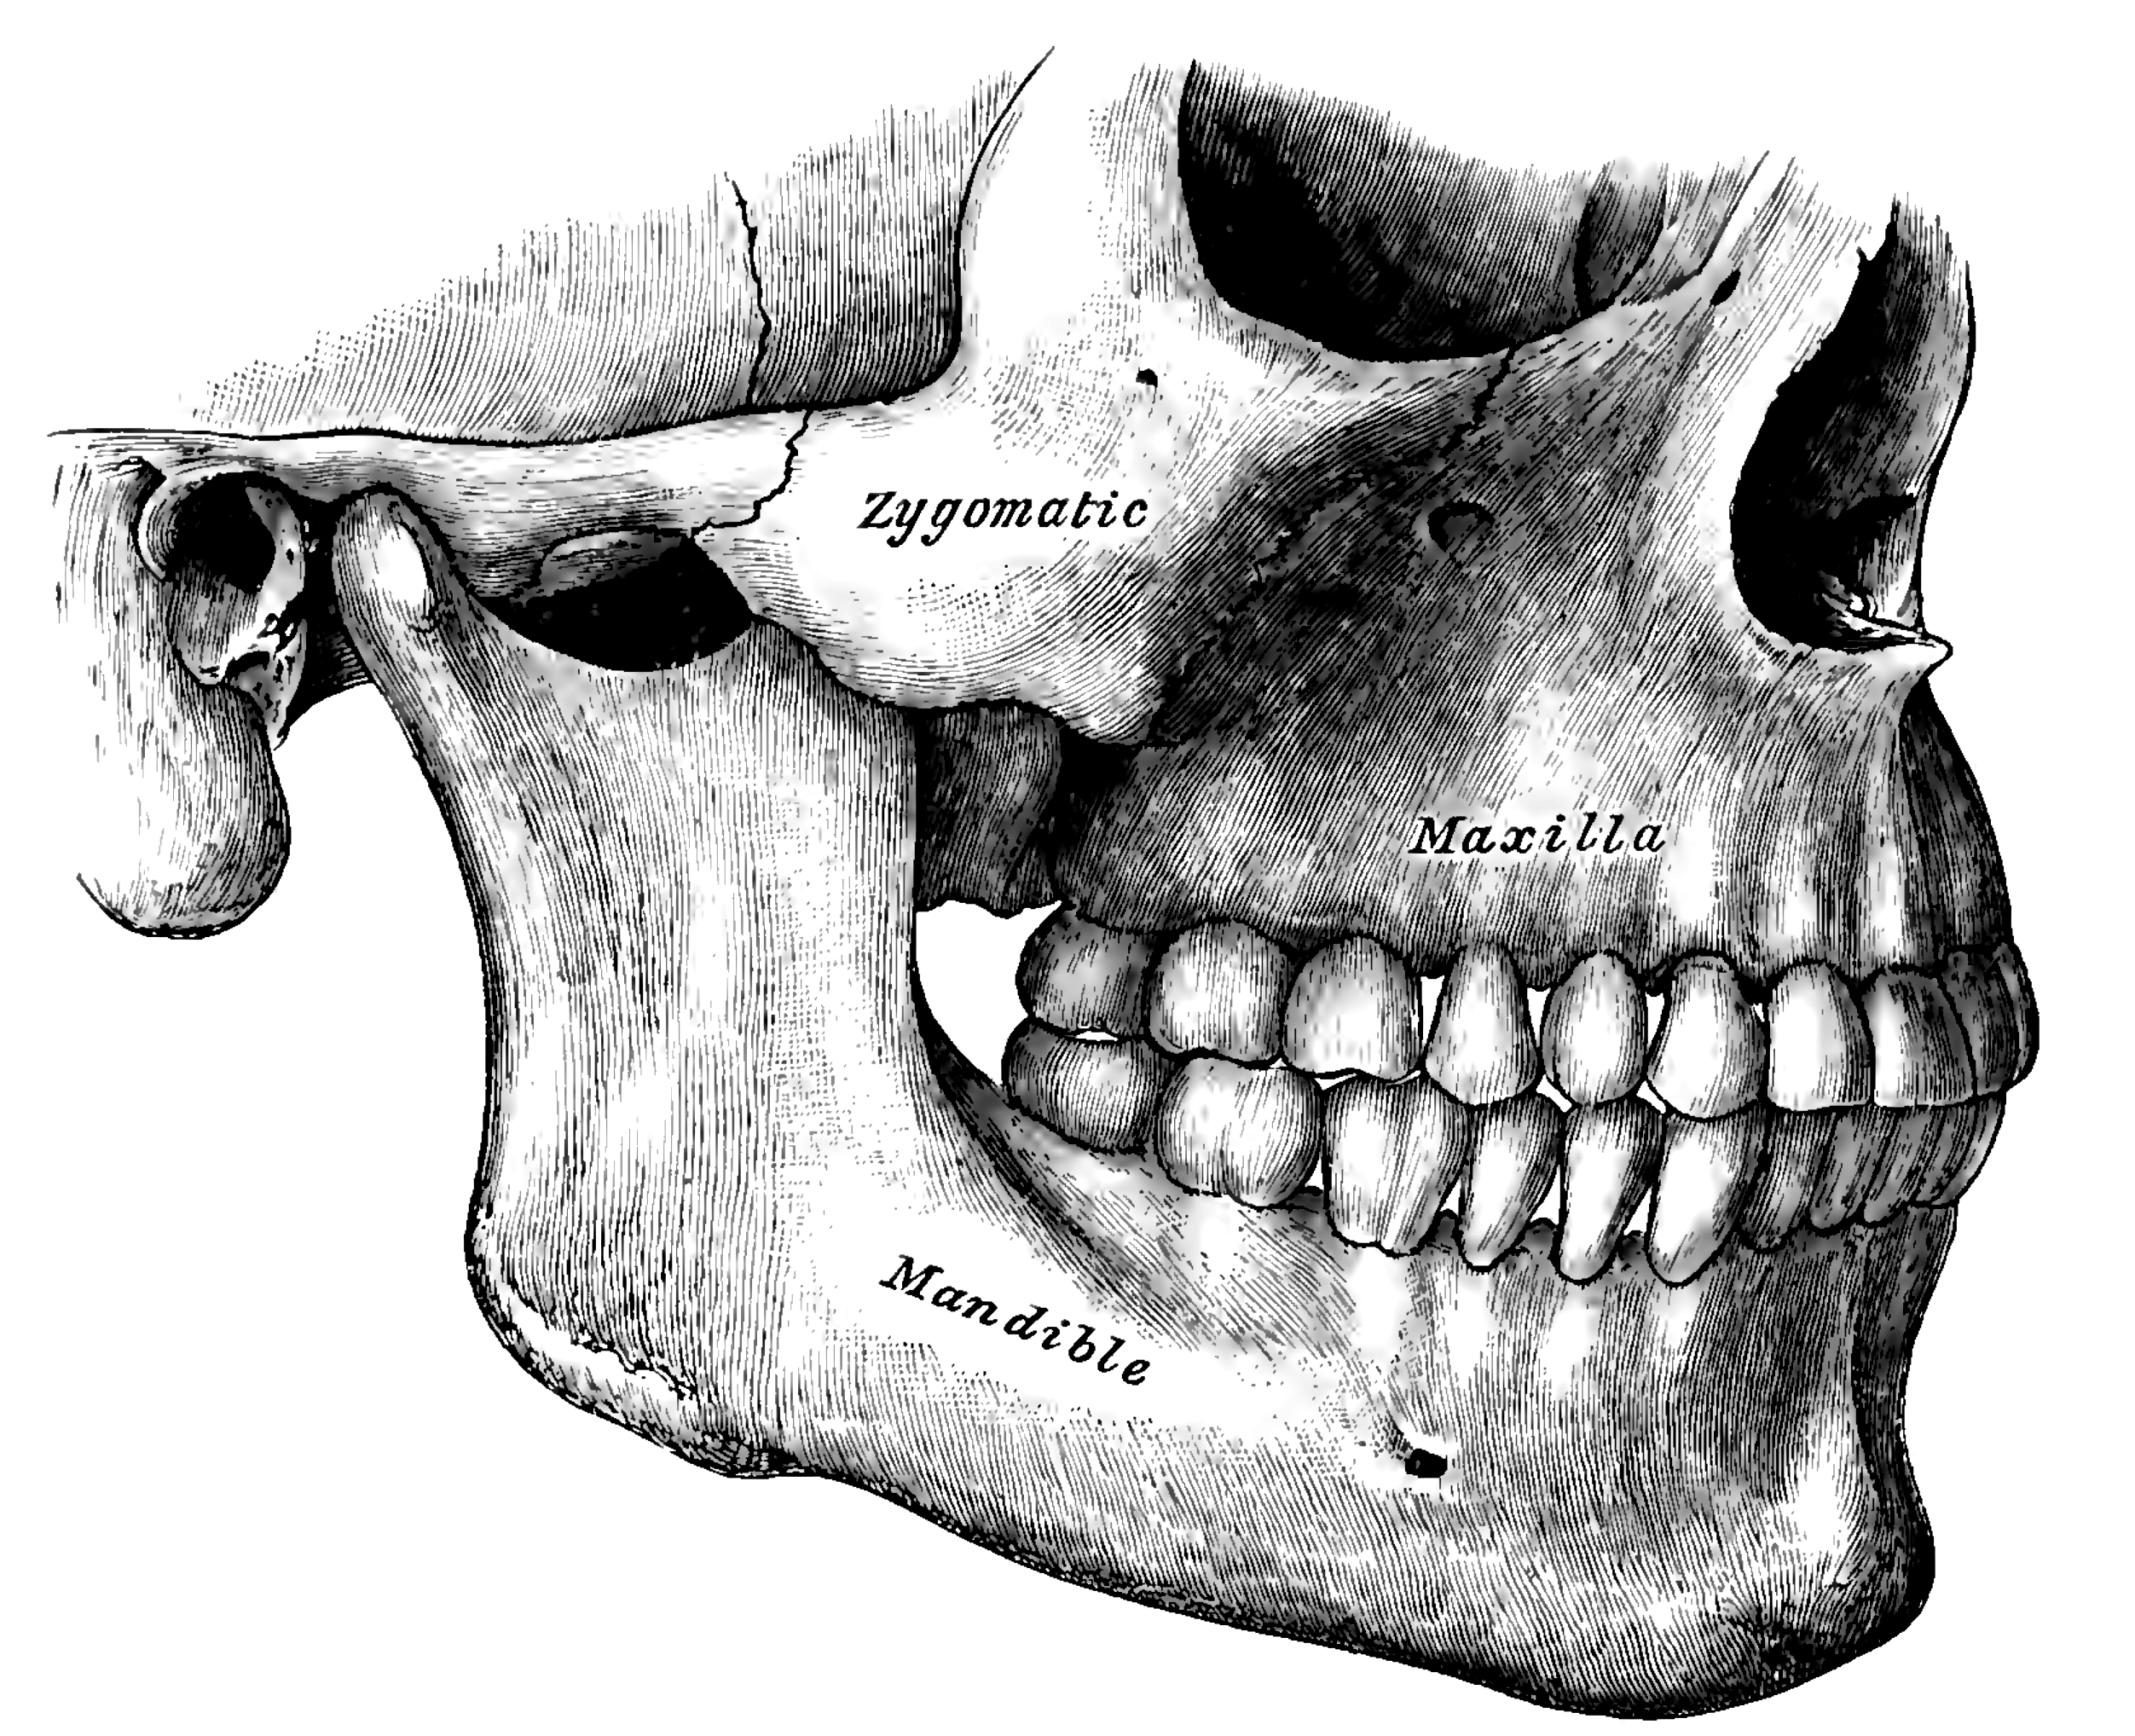 Orthognathic surgery - Wikipedia